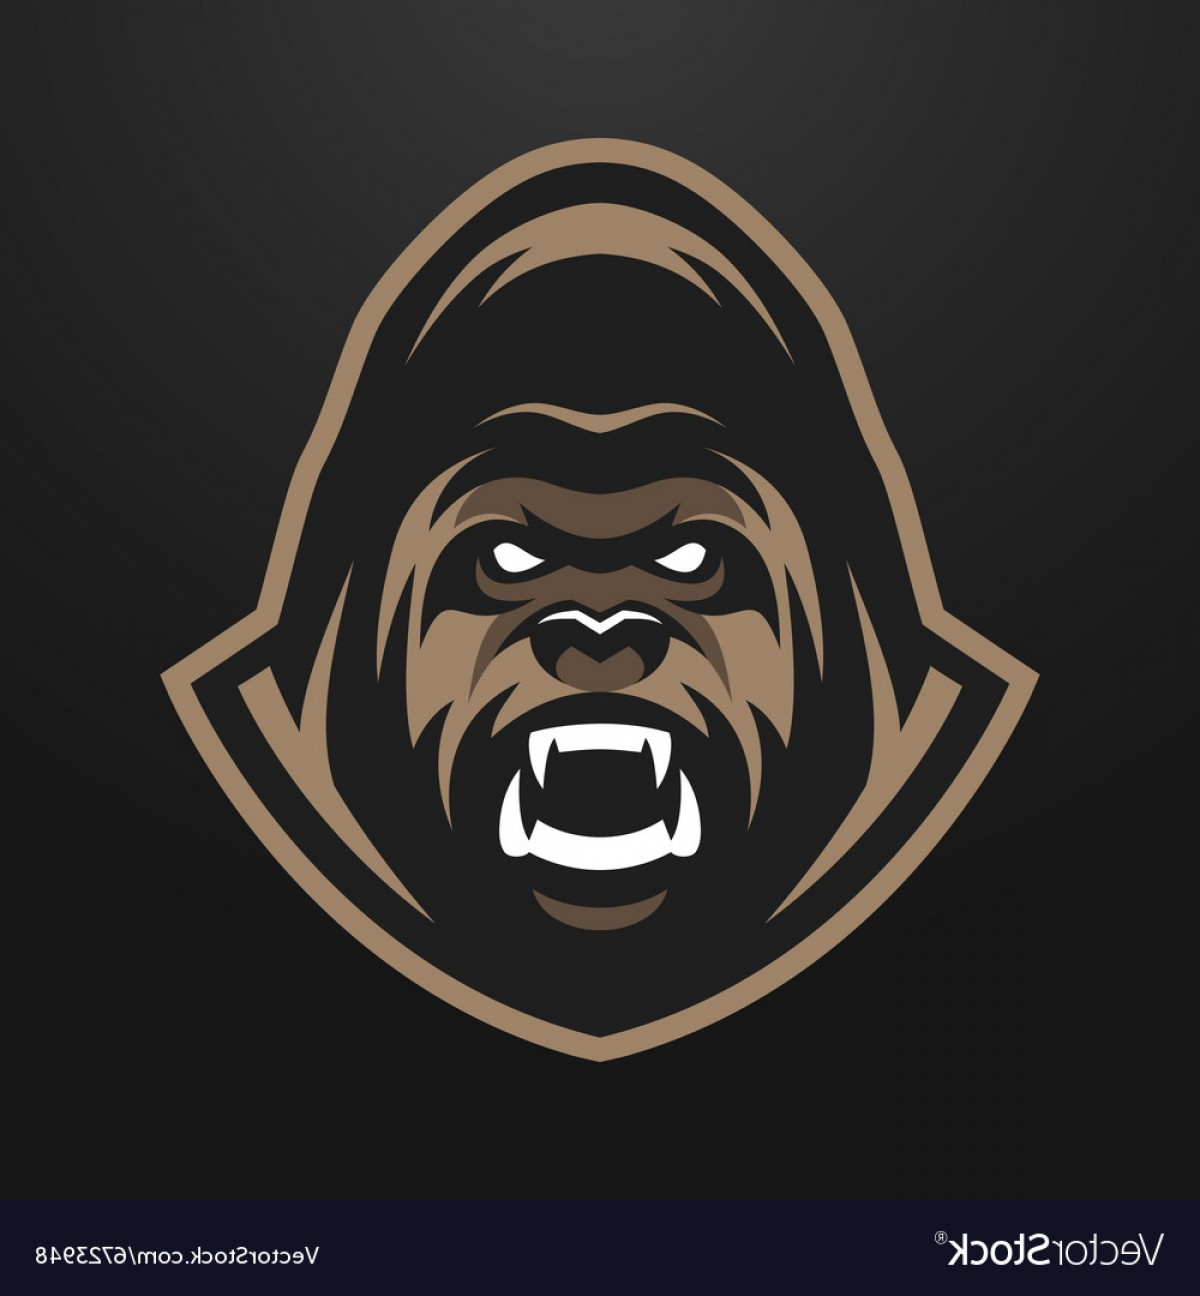 Chewbacca Vector Flat Design: Angry Gorilla Logo Symbol Vector